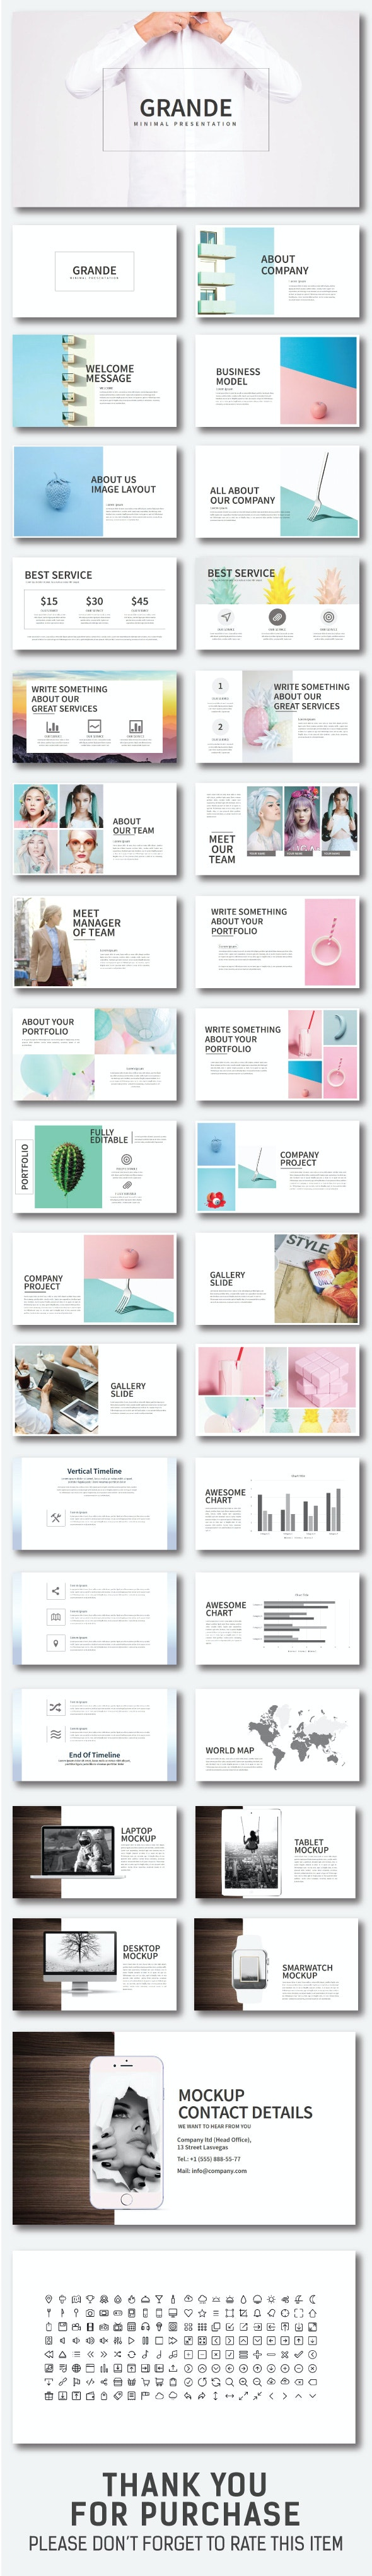 Grande Powerpoint Template - Creative PowerPoint Templates